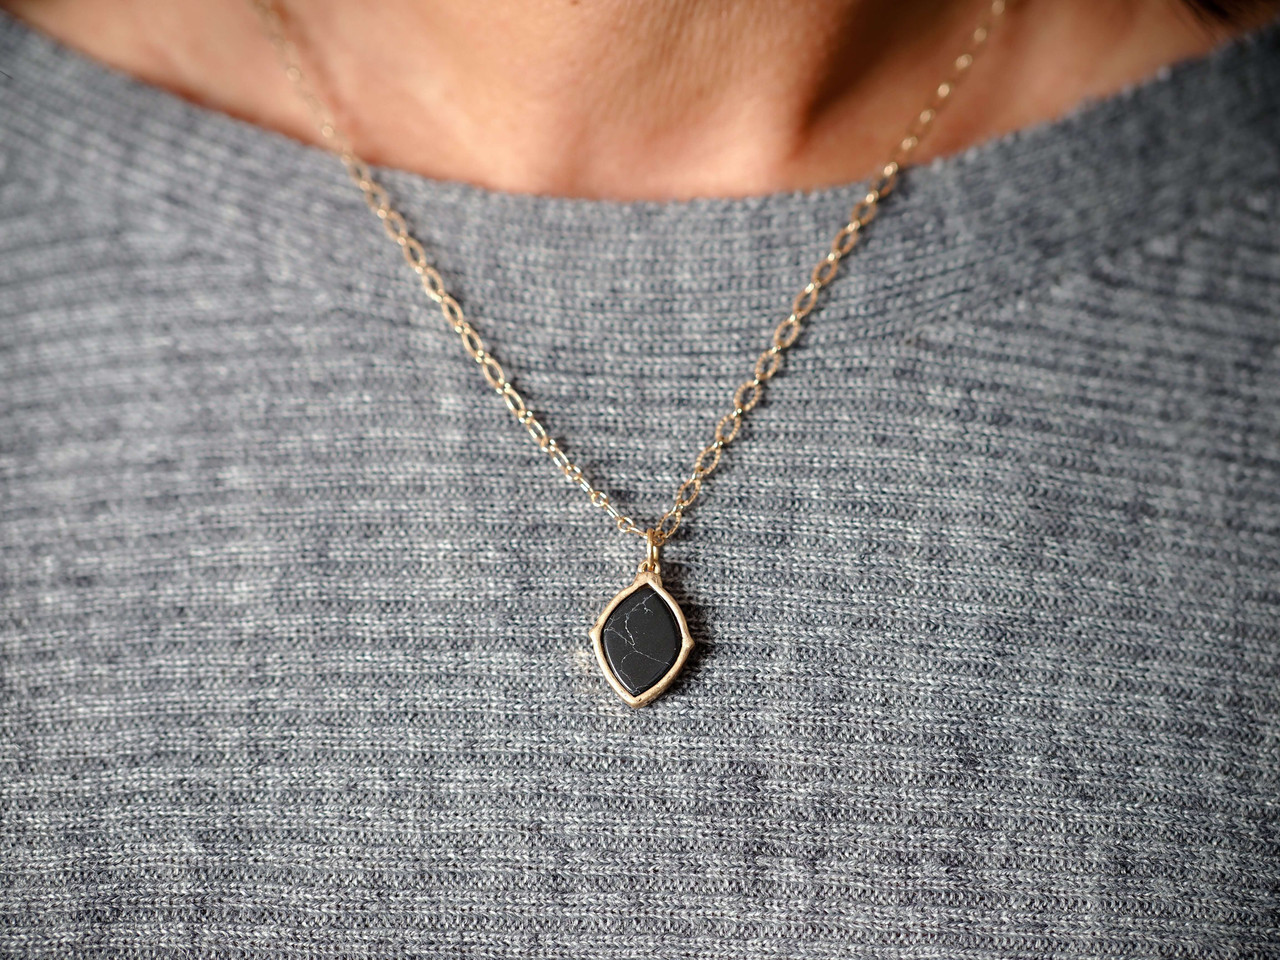 Mini Black Marbled stone pendant gold necklace, Nickle and lead free.